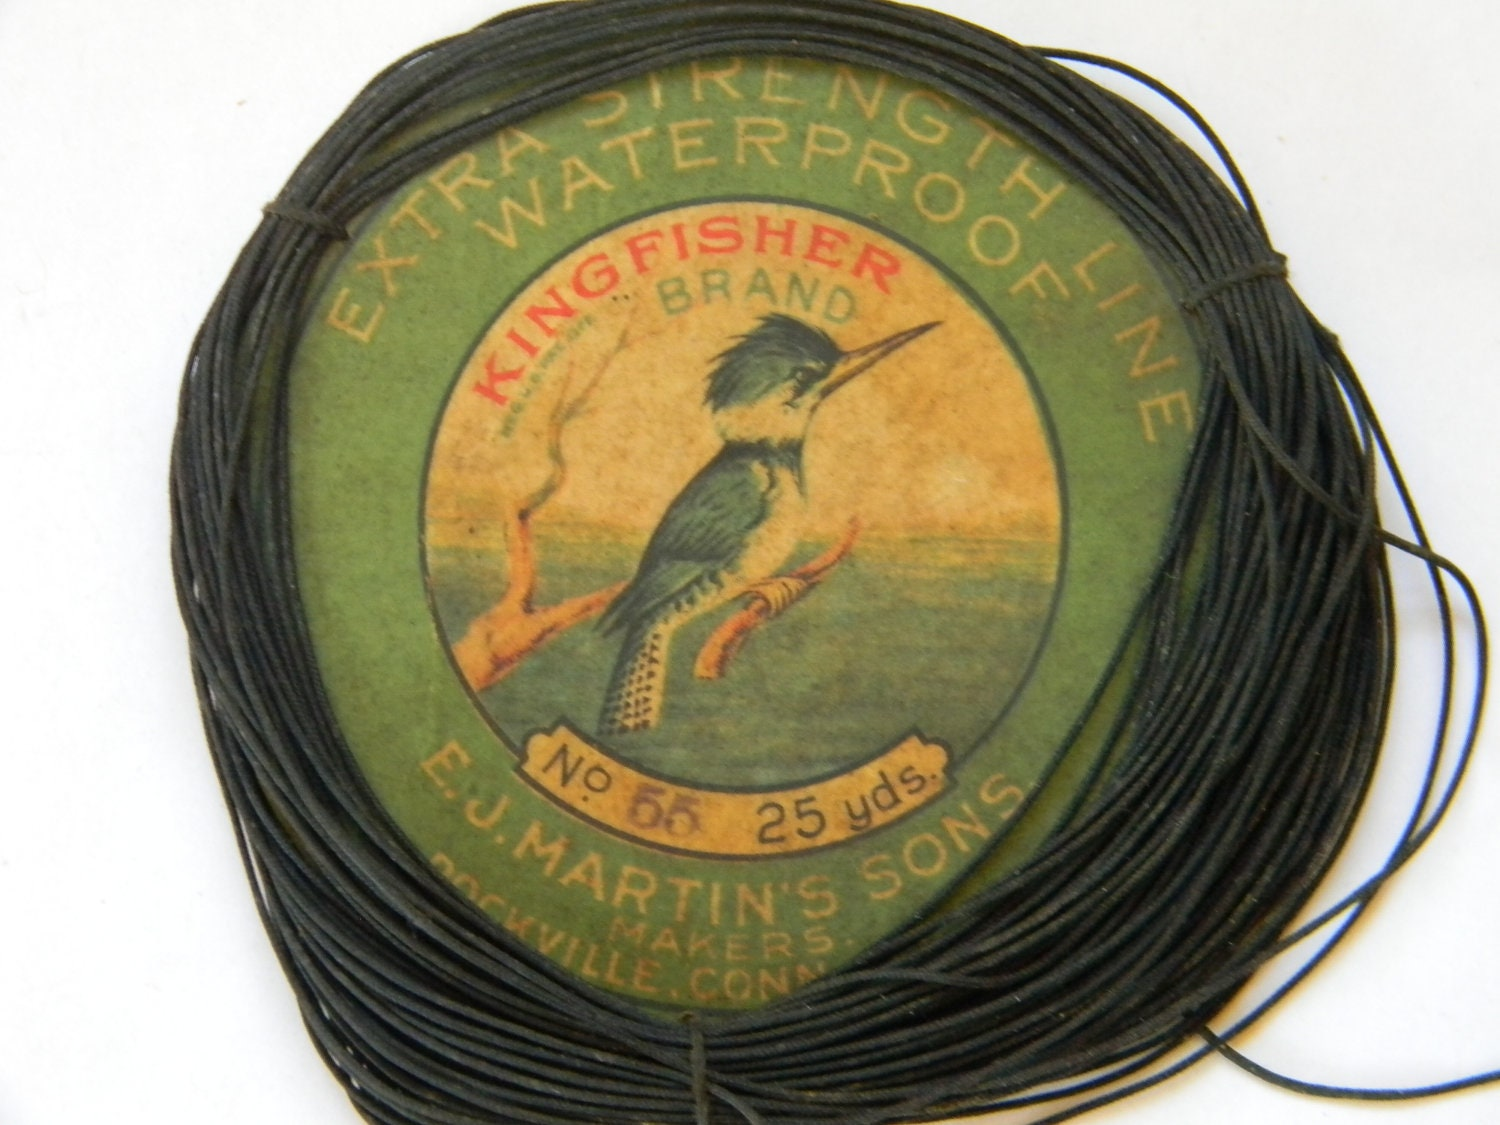 Vintage kingfisher brand fly fishing line for Fishing line brands